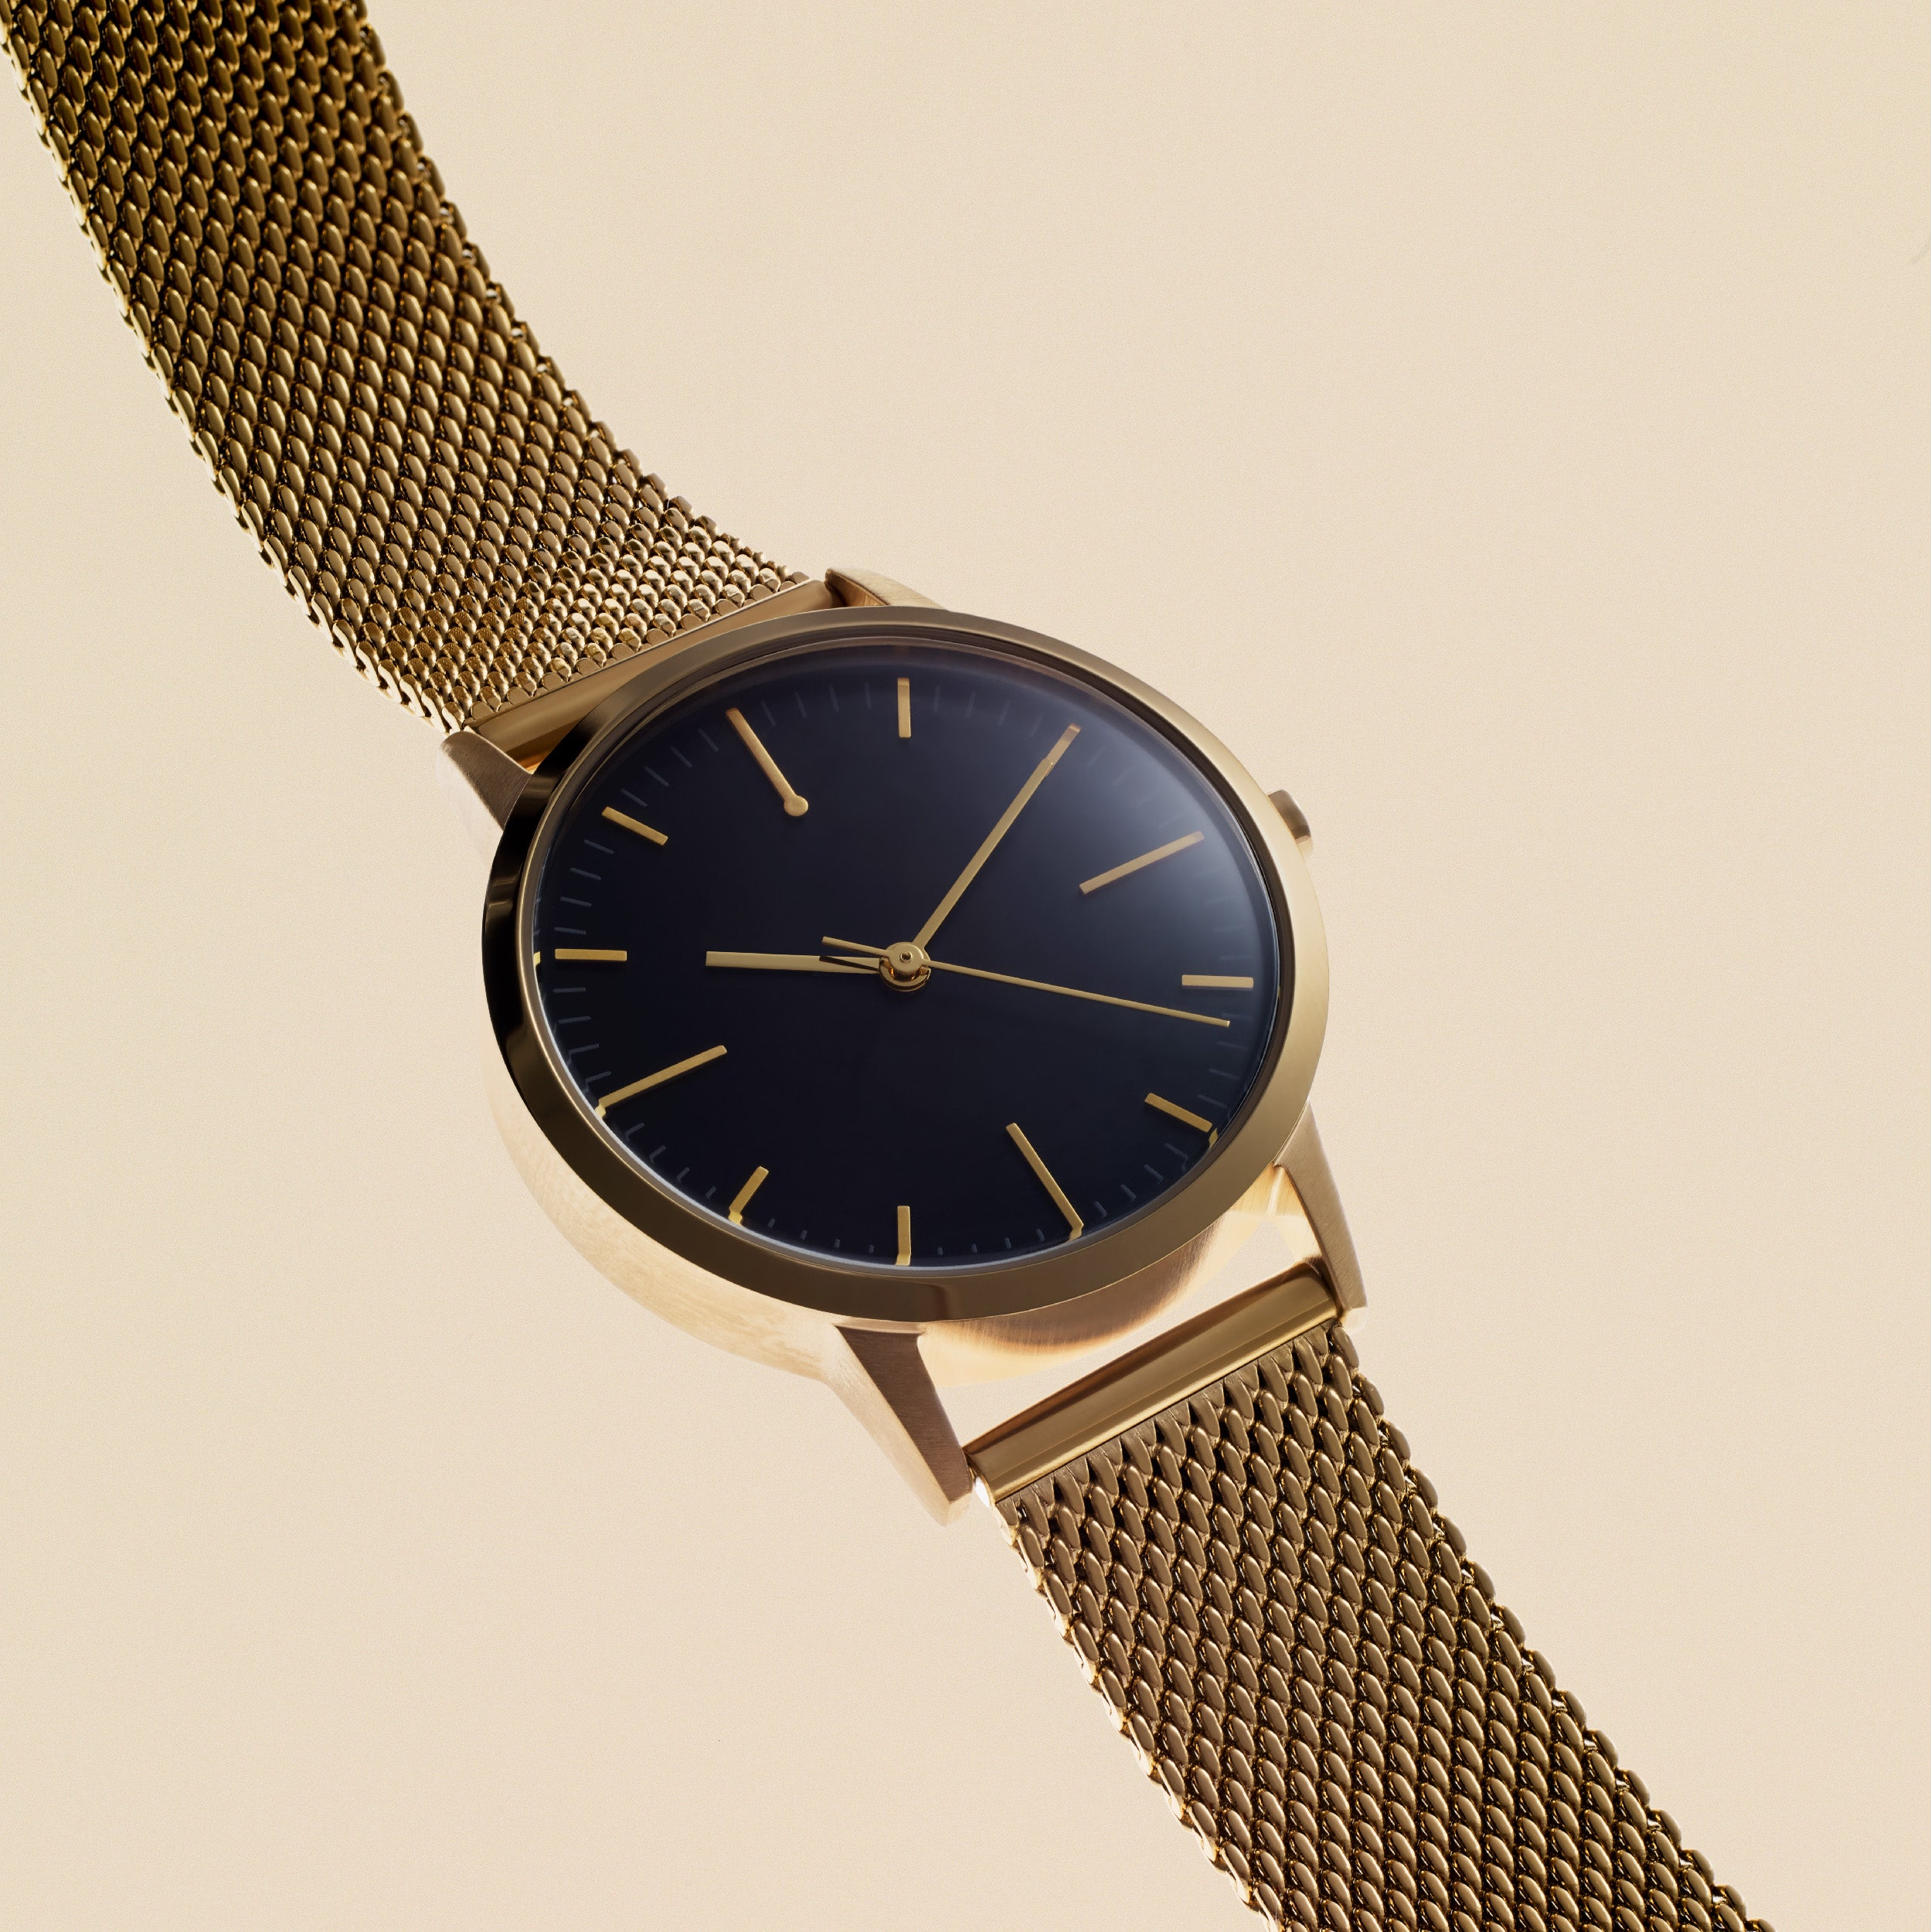 Ladies Watch Gold Mesh Strap - Simple Design - Gold Mesh Black Dial - UK - Under £100 - Freedom To Exist - Minimal Watches British Design